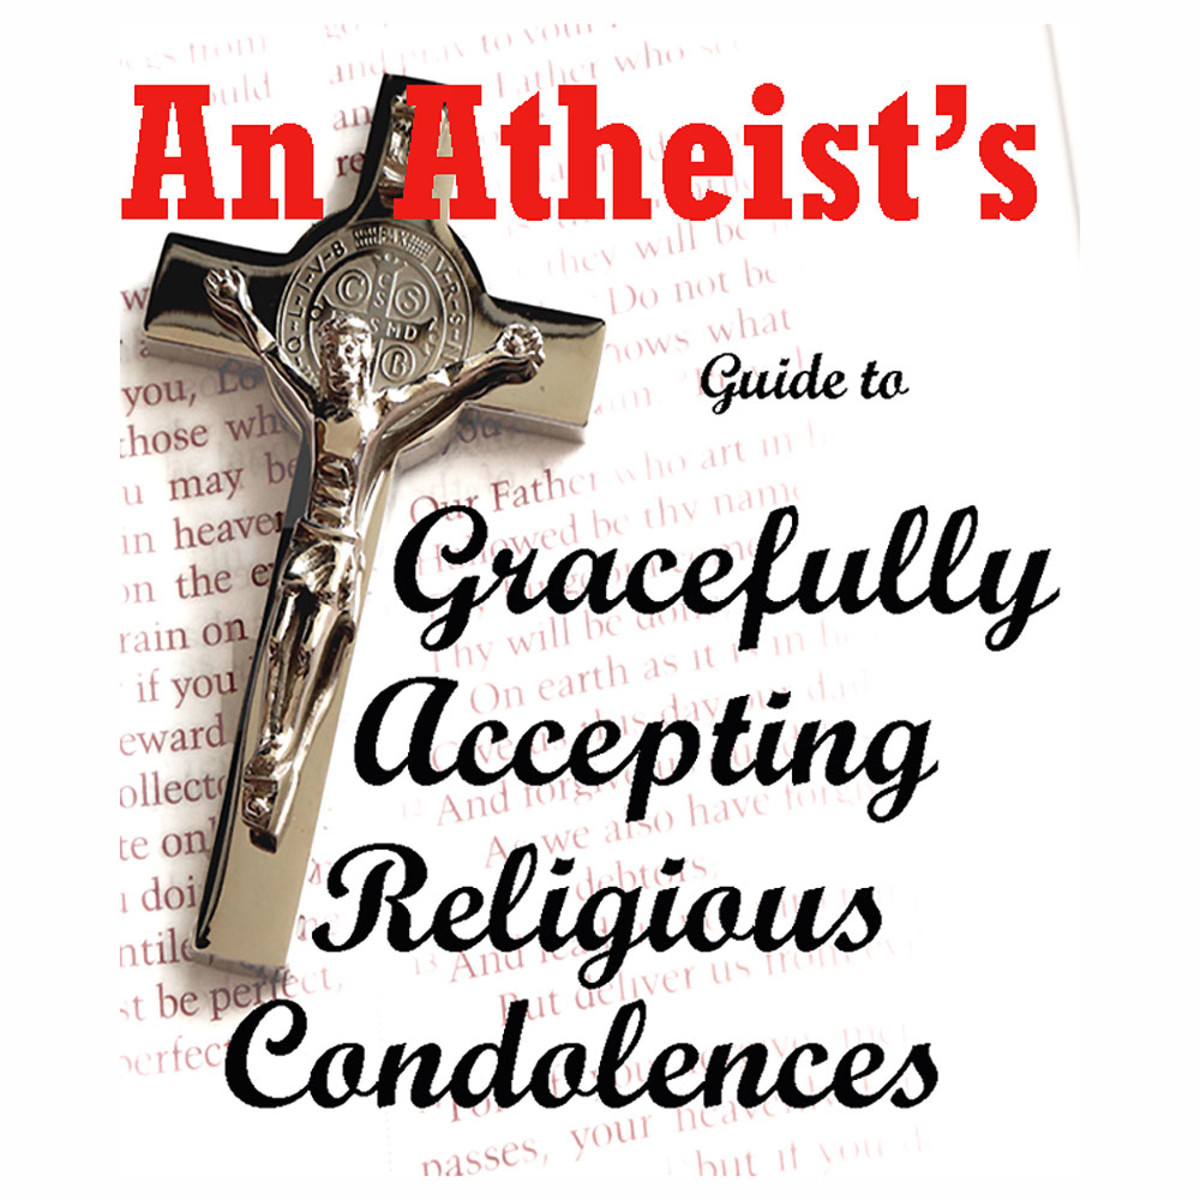 My Advice for Accepting Religious Condolences as an Atheist